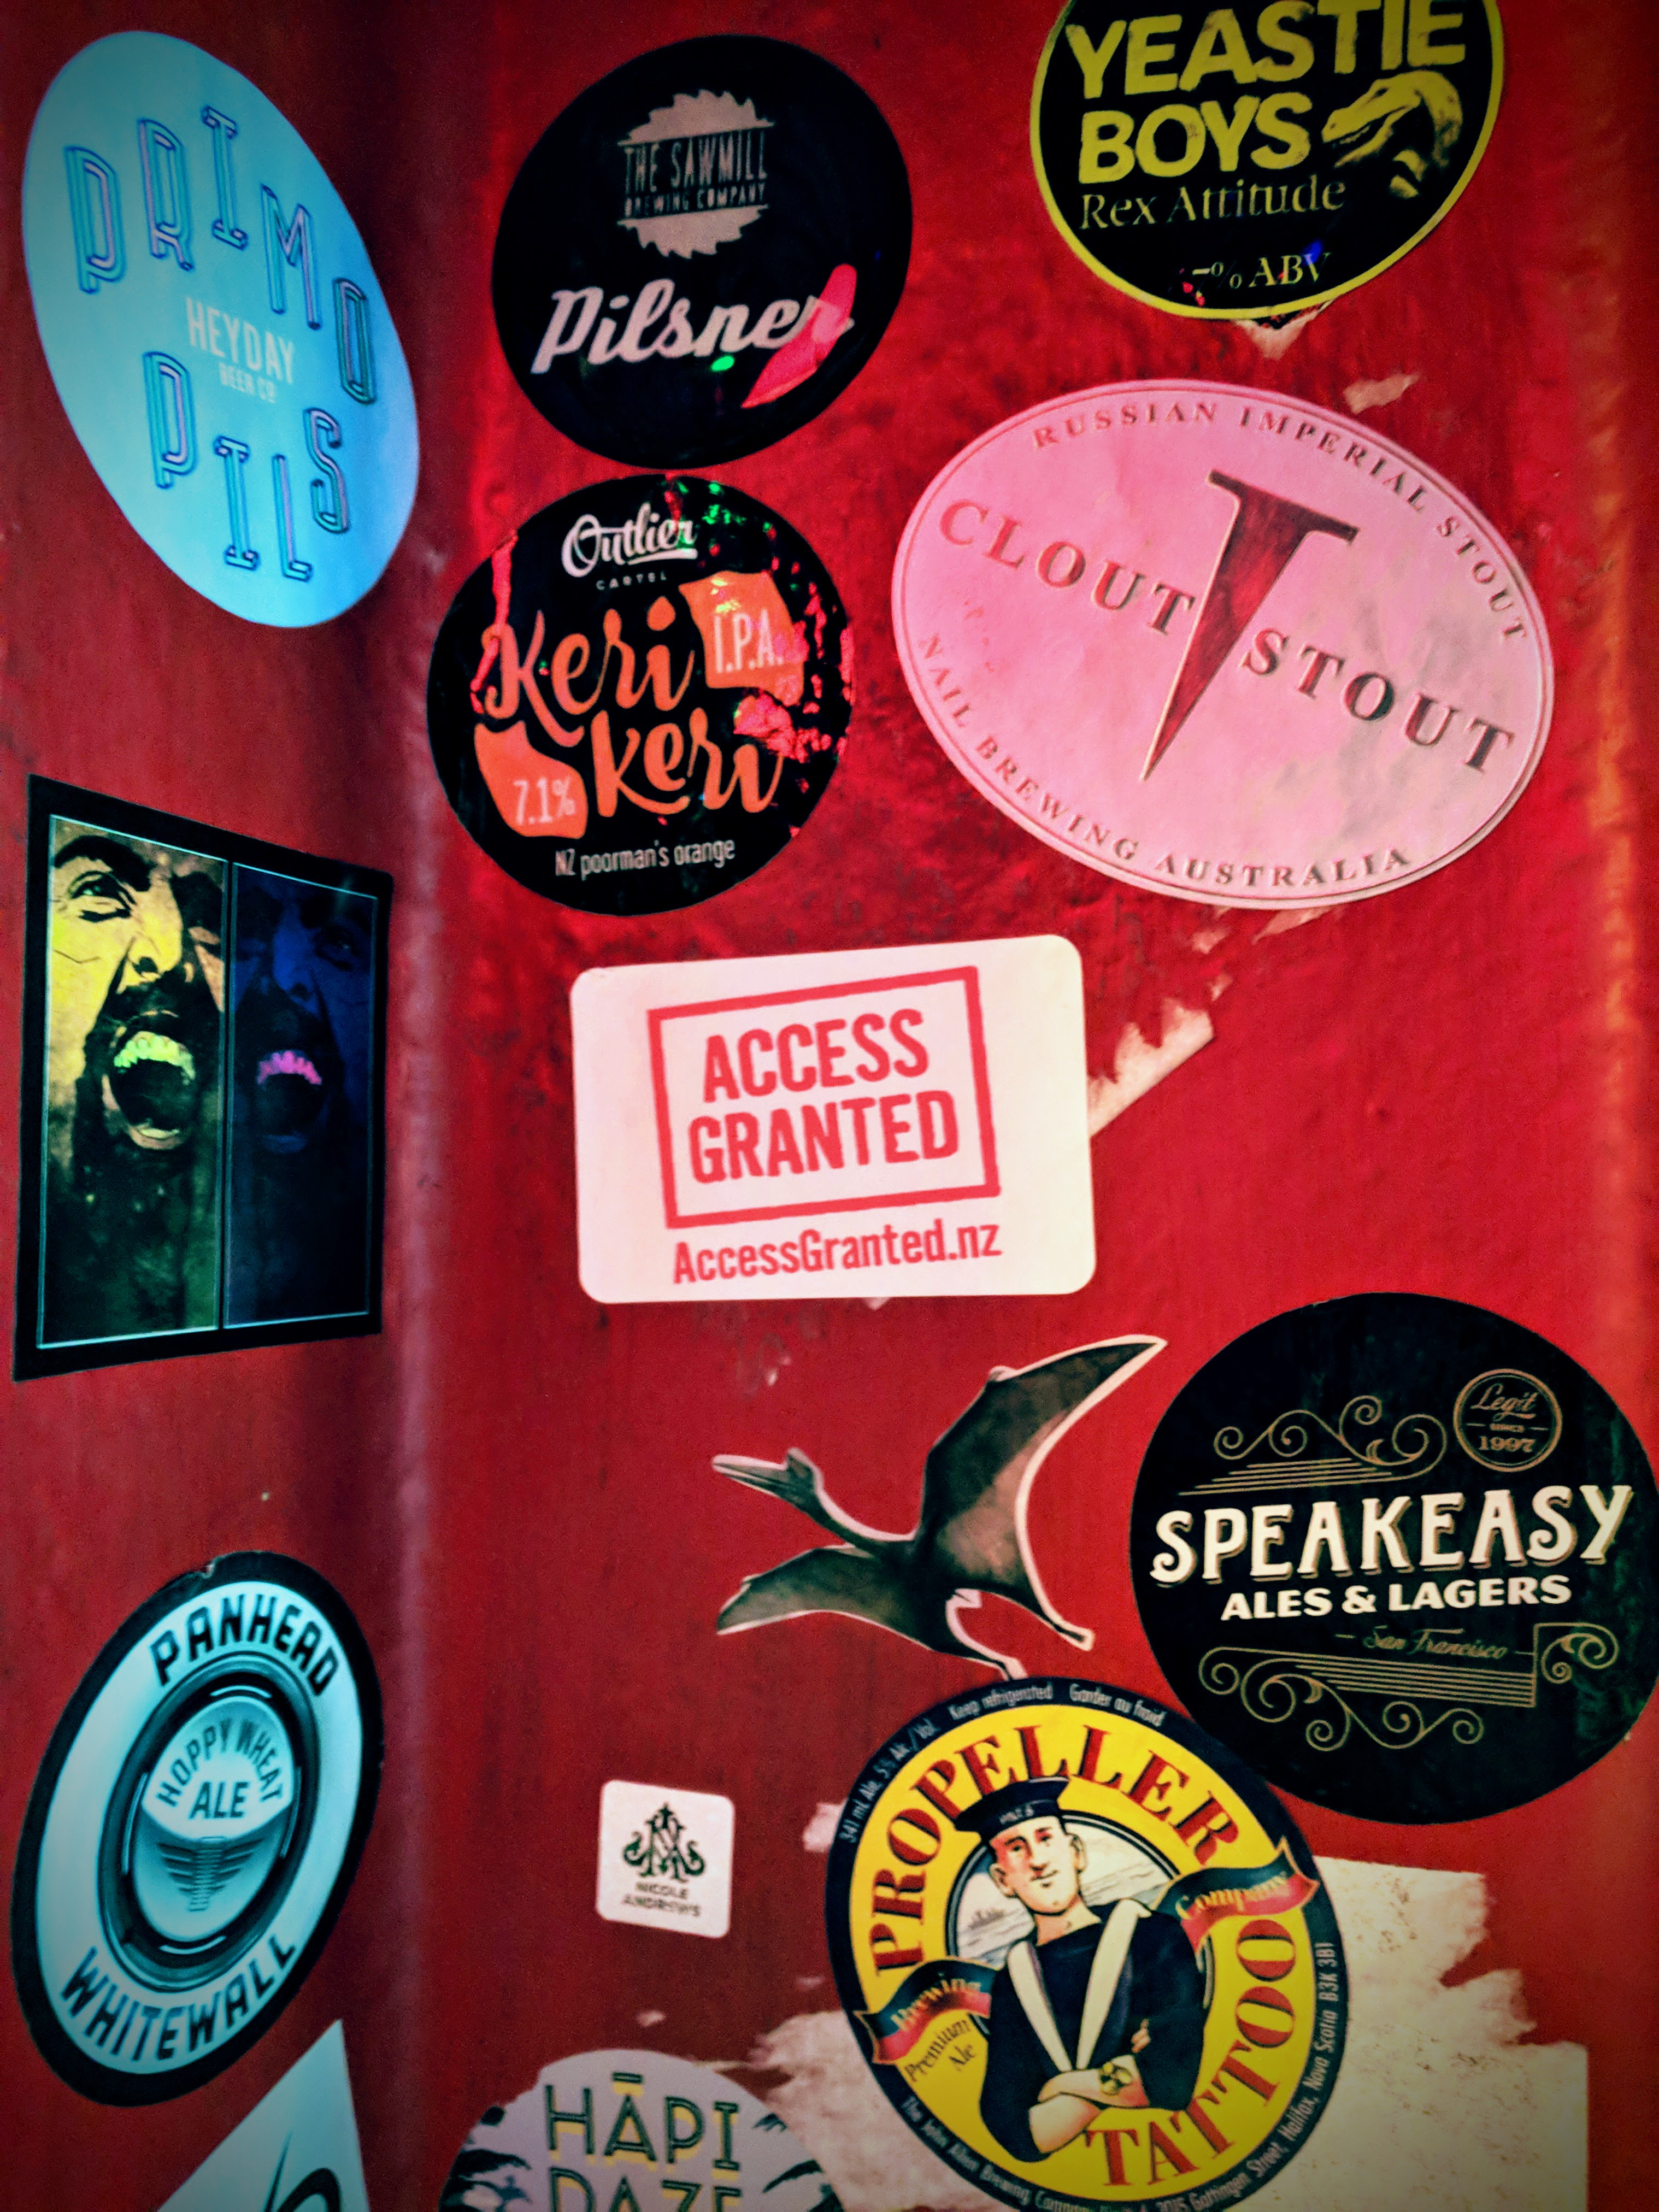 Access Granted NZ sticker amongst others at a pub